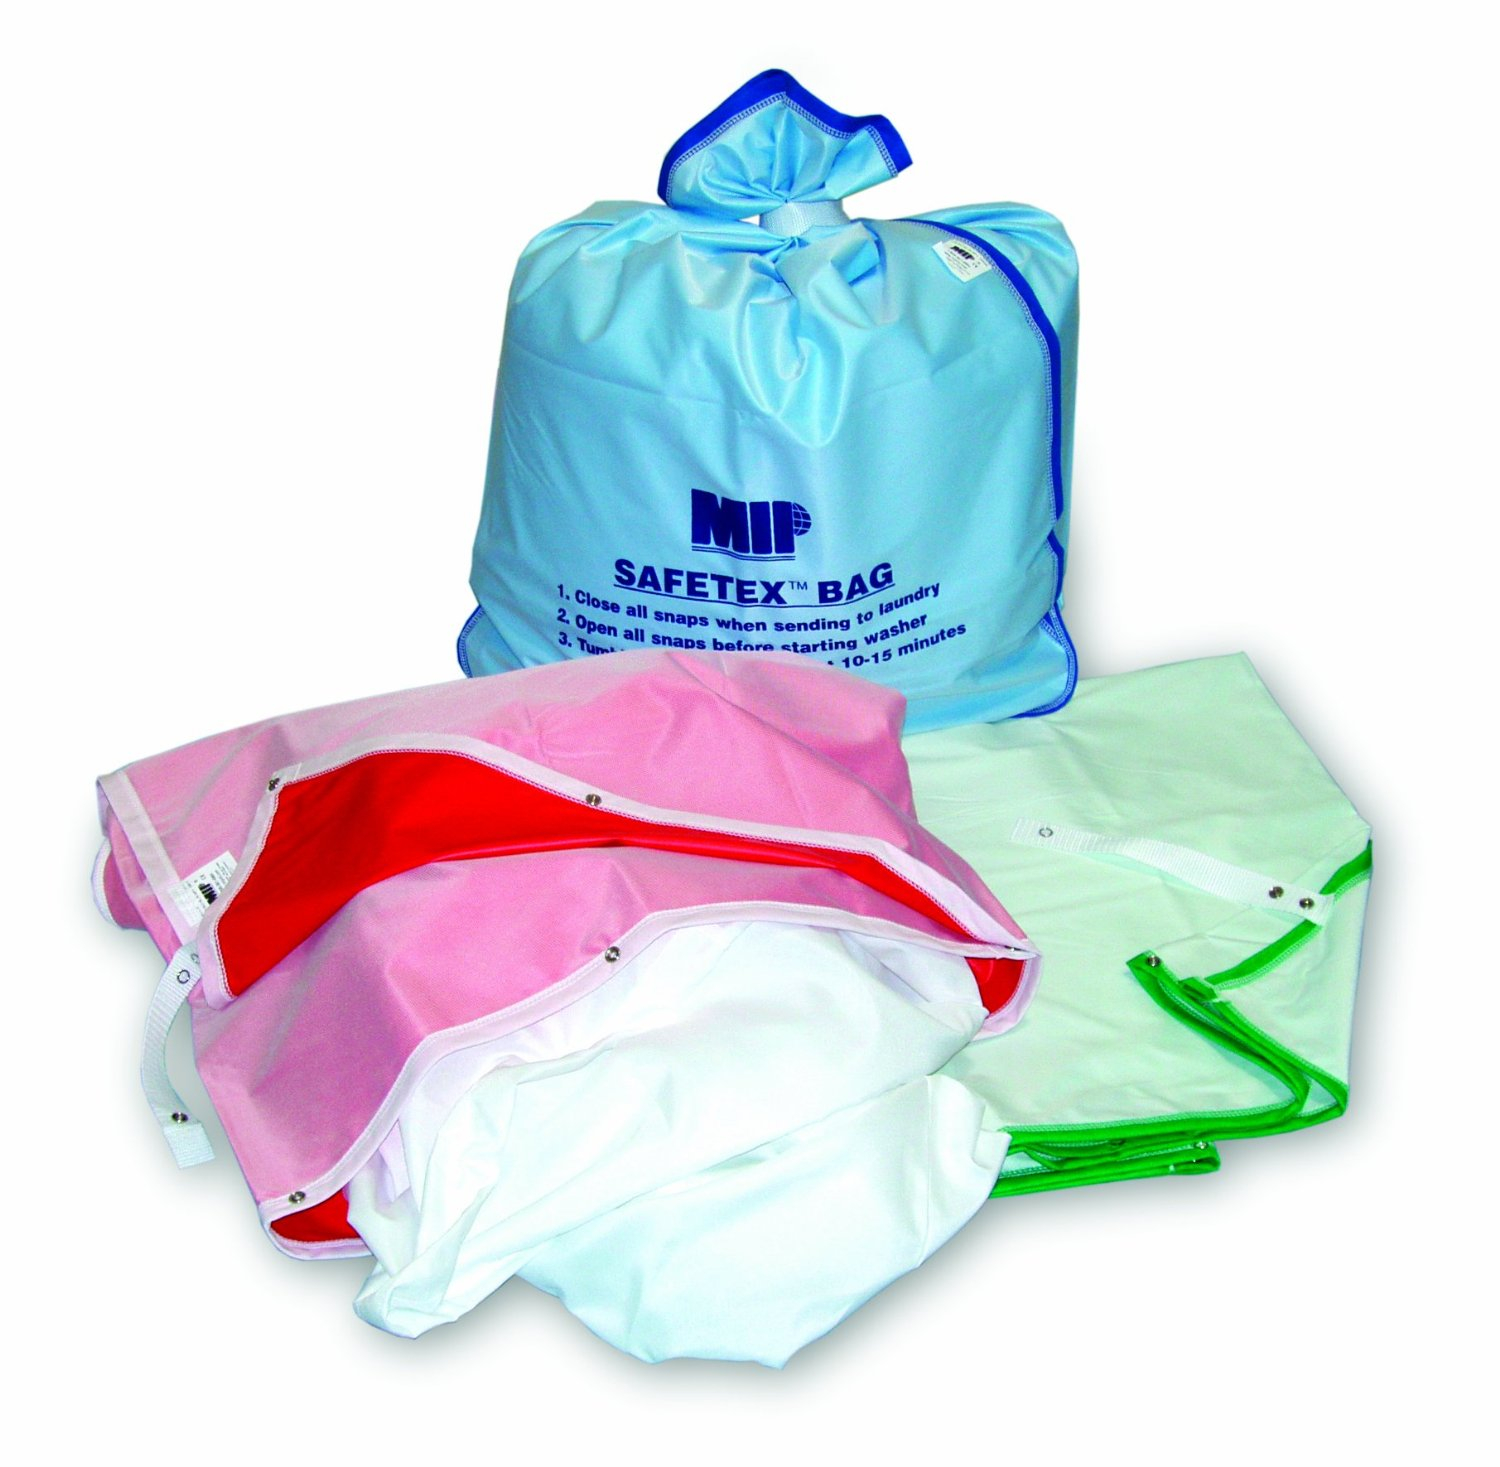 Green Safetex Laundry Bag